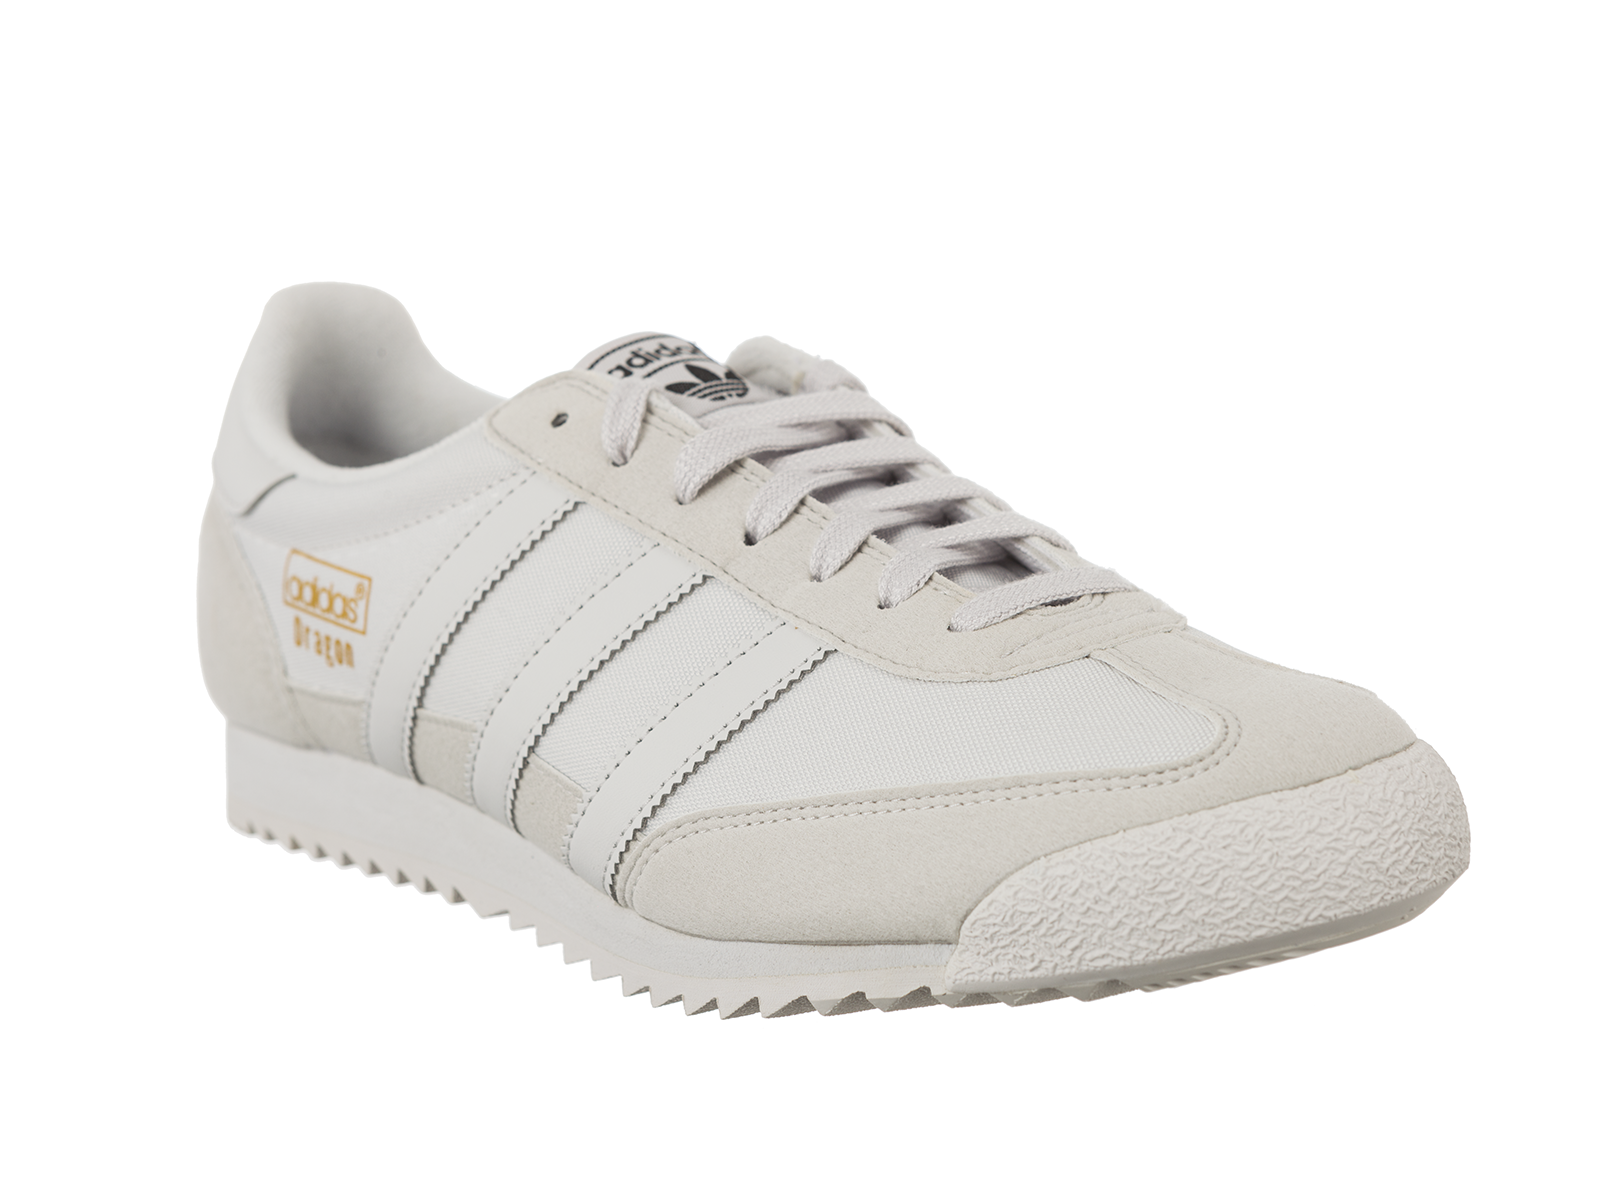 size 40 b5399 cb73f Adidas - Chaussures - Homme - Gris - Taille 43 13 EU